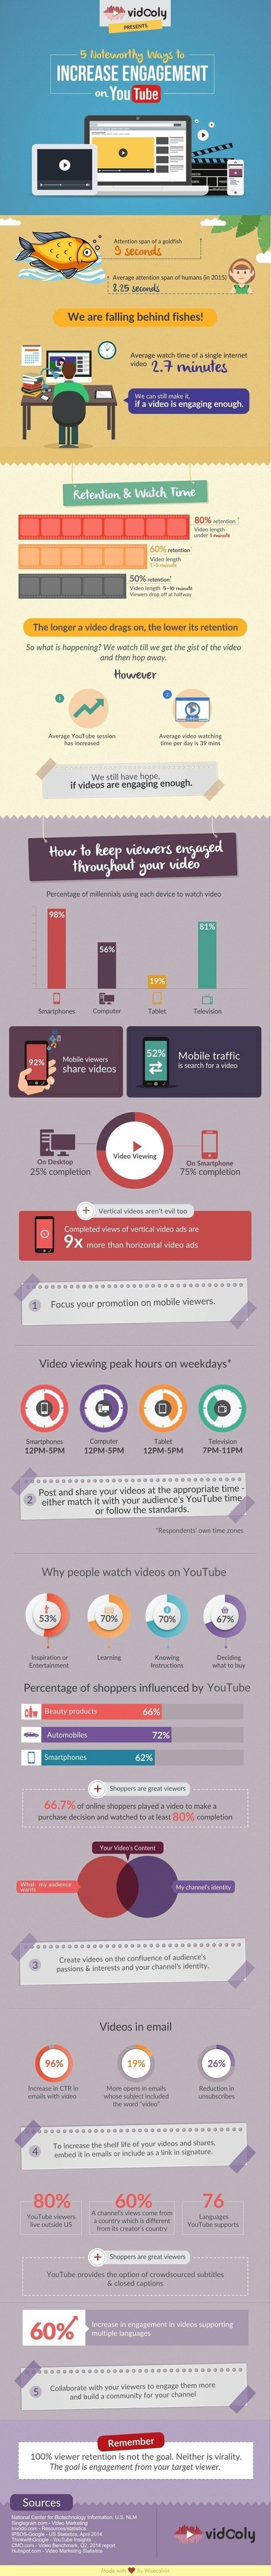 Five Noteworthy Ways to Increase Engagement on YouTube [Infographic] | Mastering Facebook, Google+, Twitter | Scoop.it